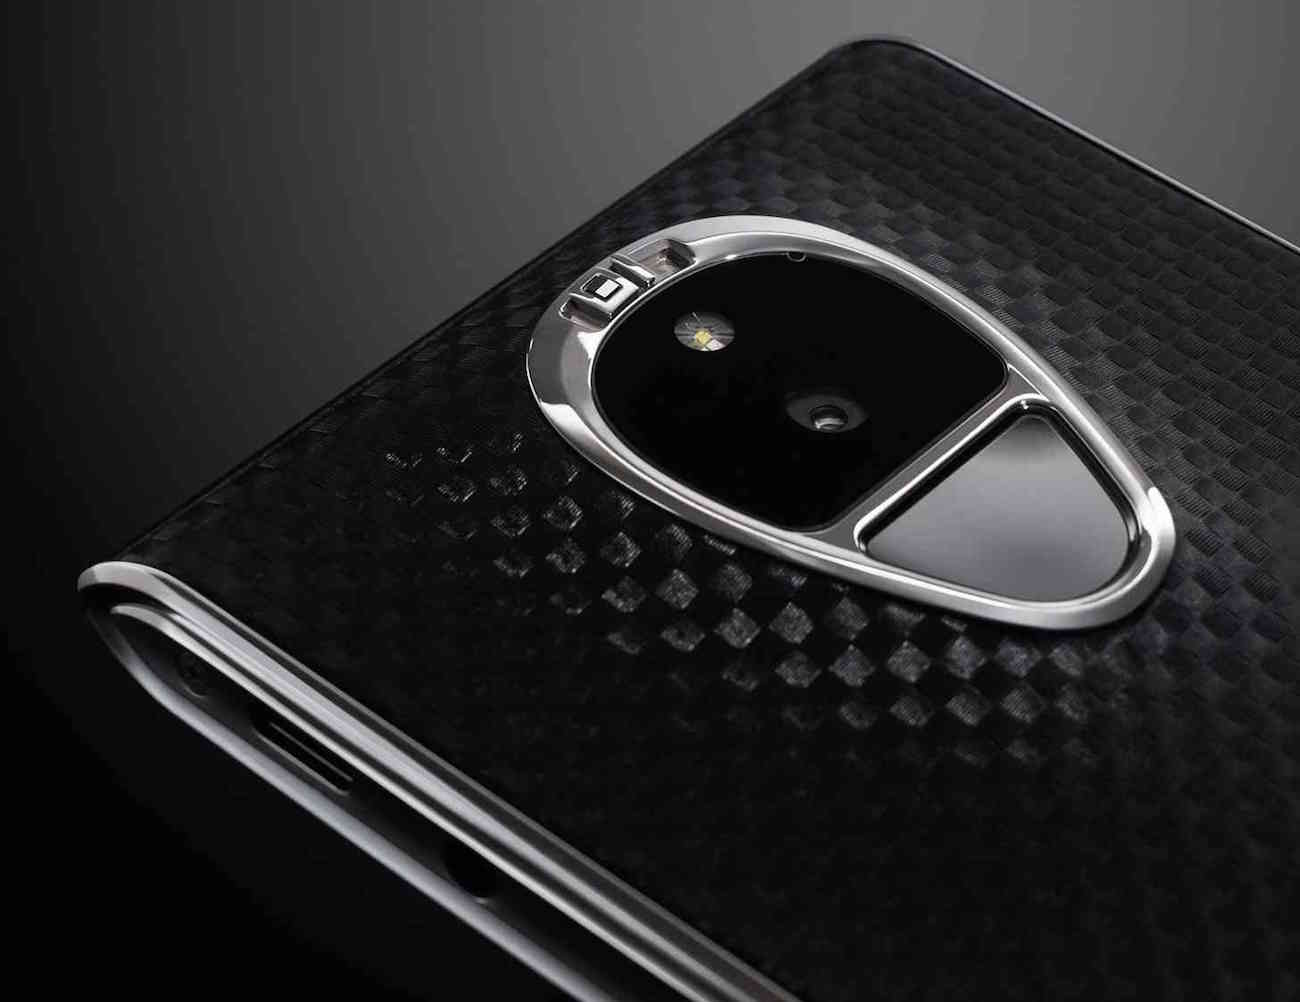 Solarin Smartphone by Sirin Labs 02